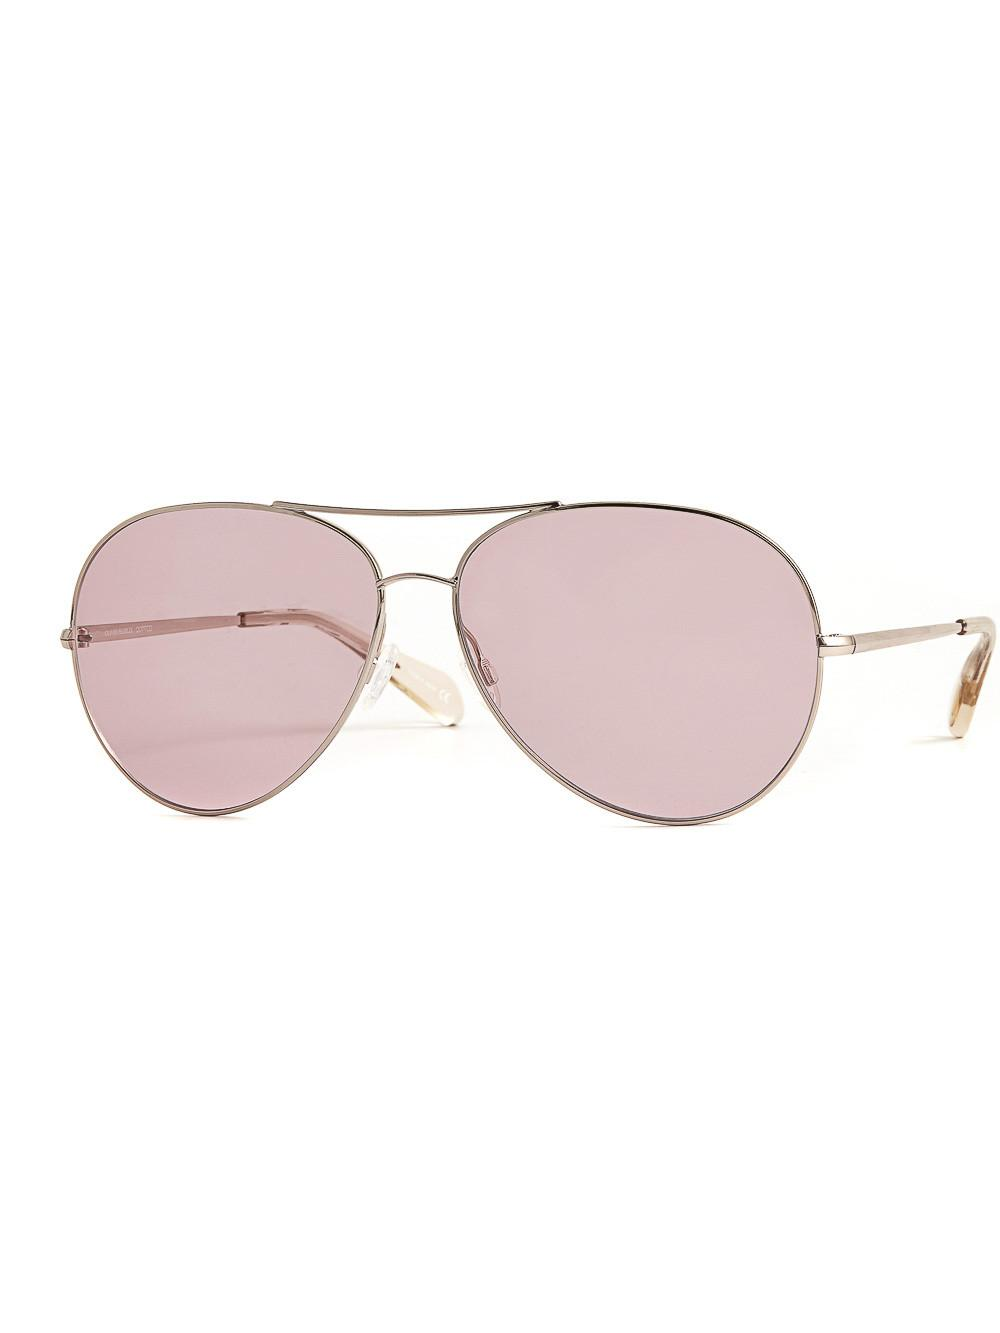 d6eafc79f Oliver Peoples Sayer Aviator Sunglasses In Metallics,Pink   ModeSens